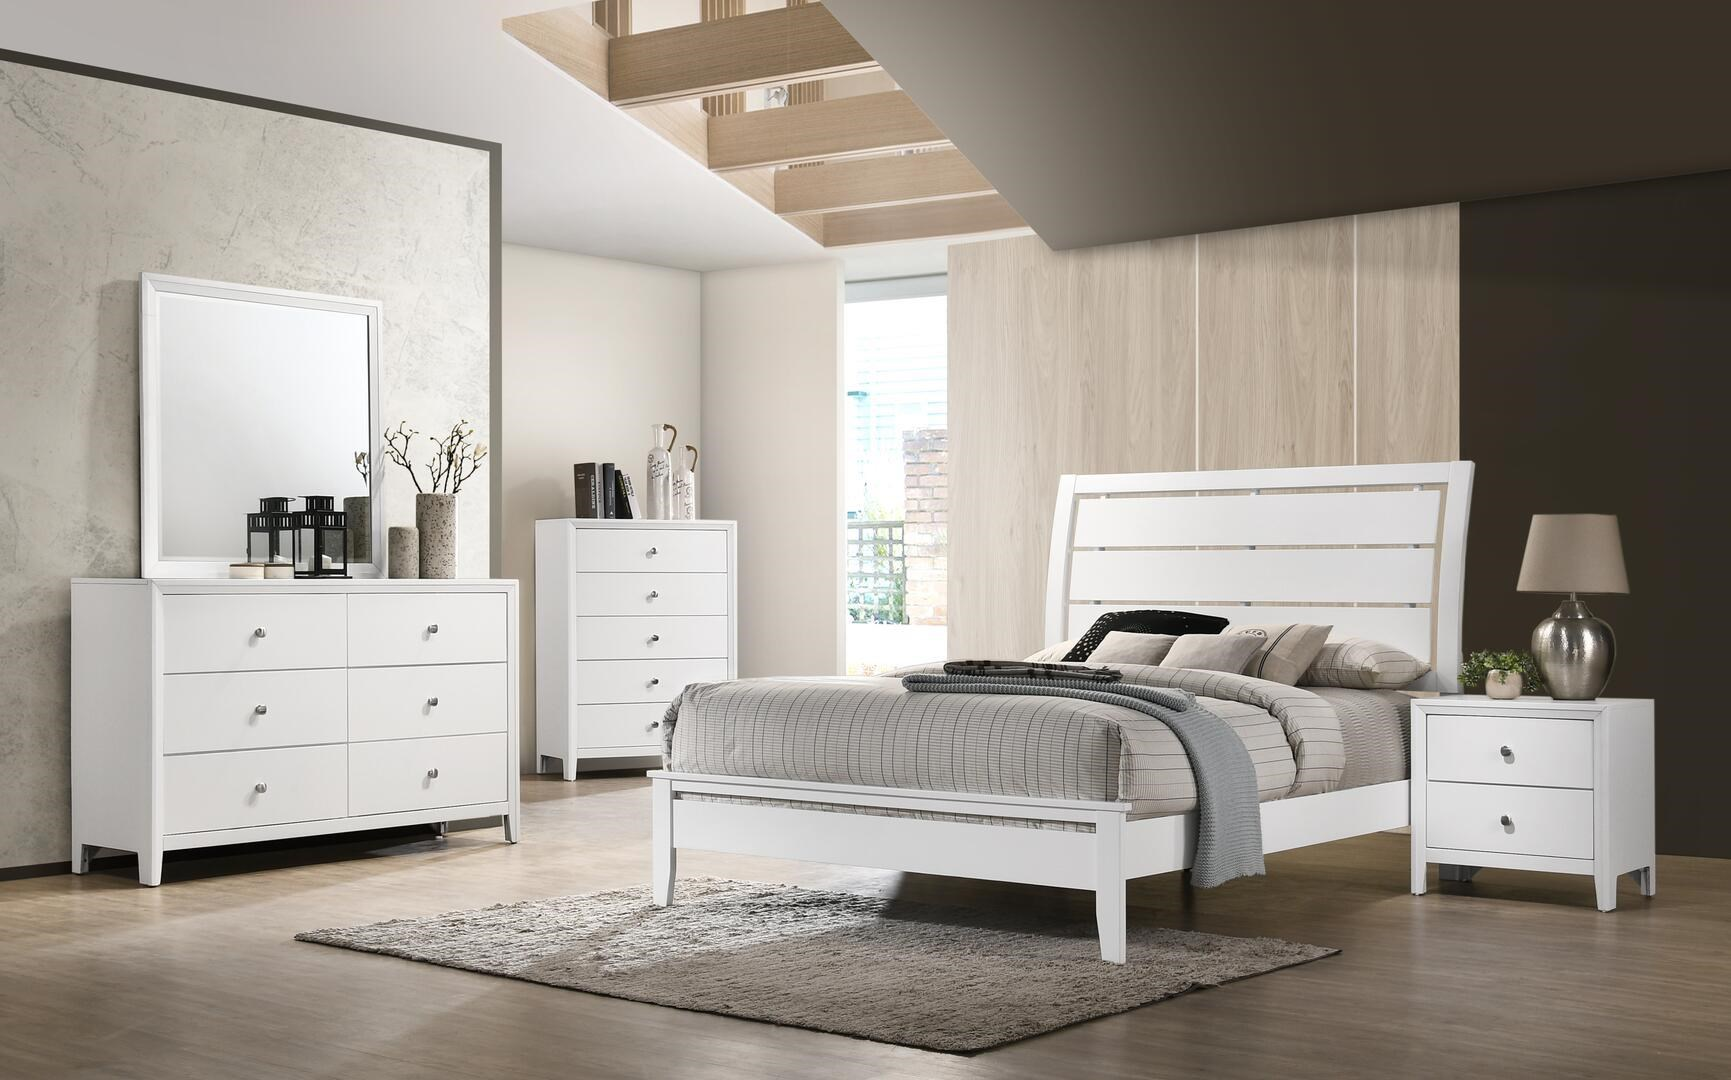 Grant White 6 Piece Queen Bedroom Group by Lane at Sam Levitz Outlet